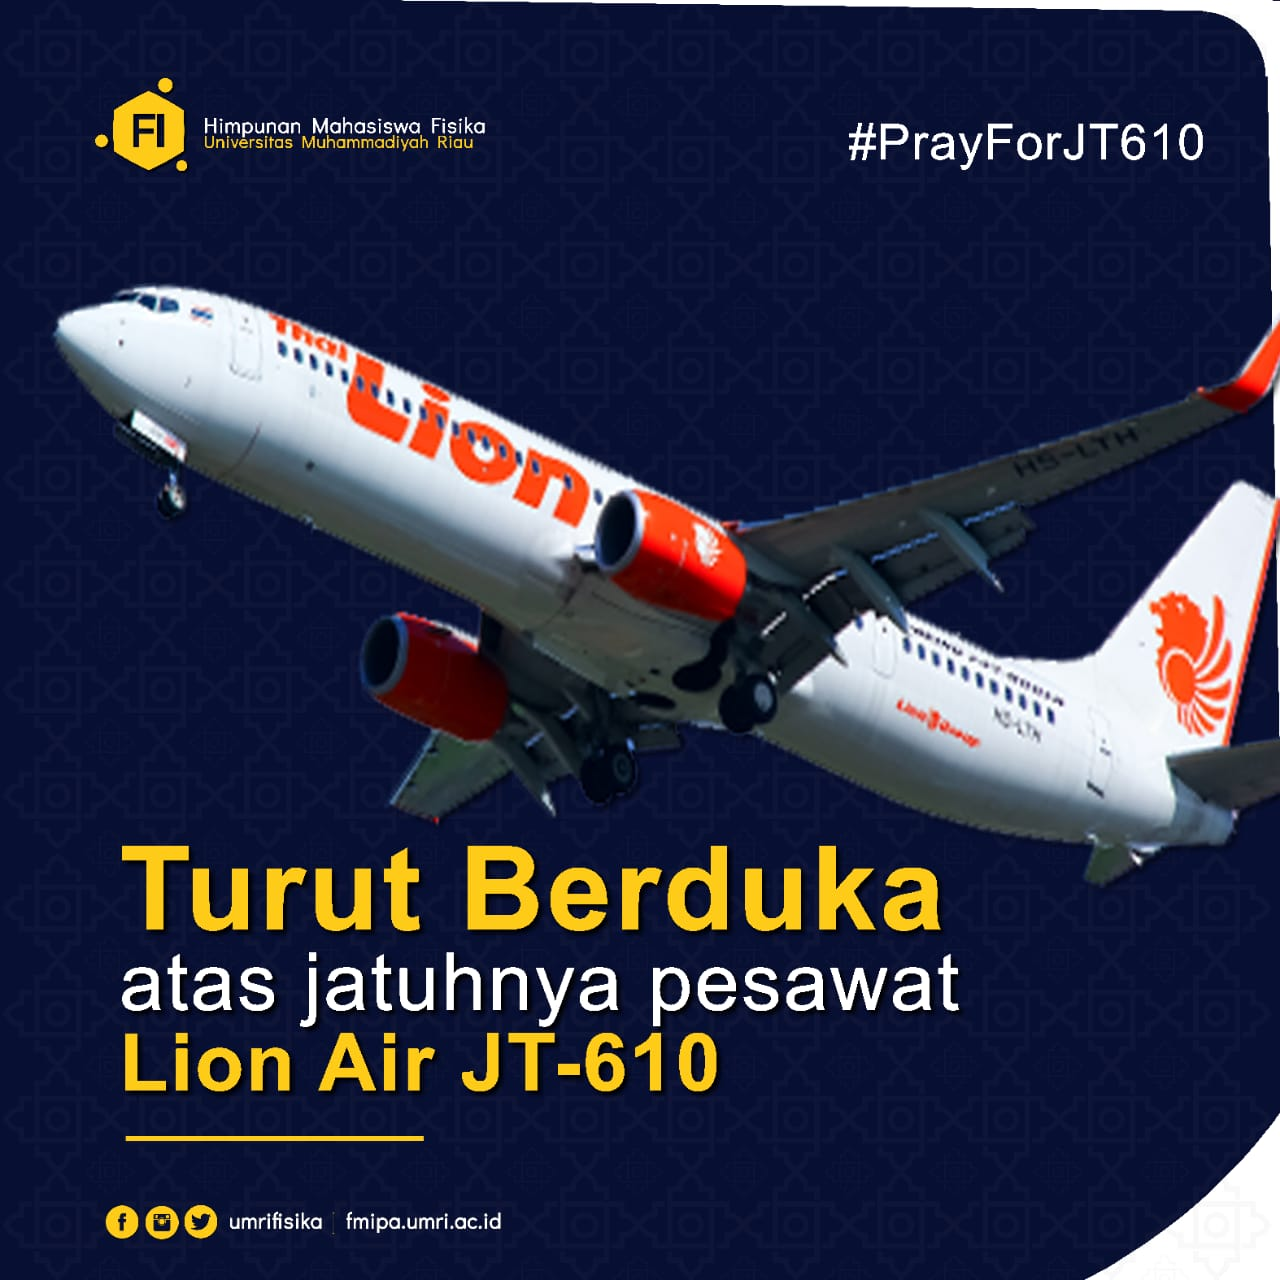 LET'S PRAY FOR JT-610. HOPING THEY WILL BE ABLE TO FIND SURVIVORS THAT ARE STILL ALIVE